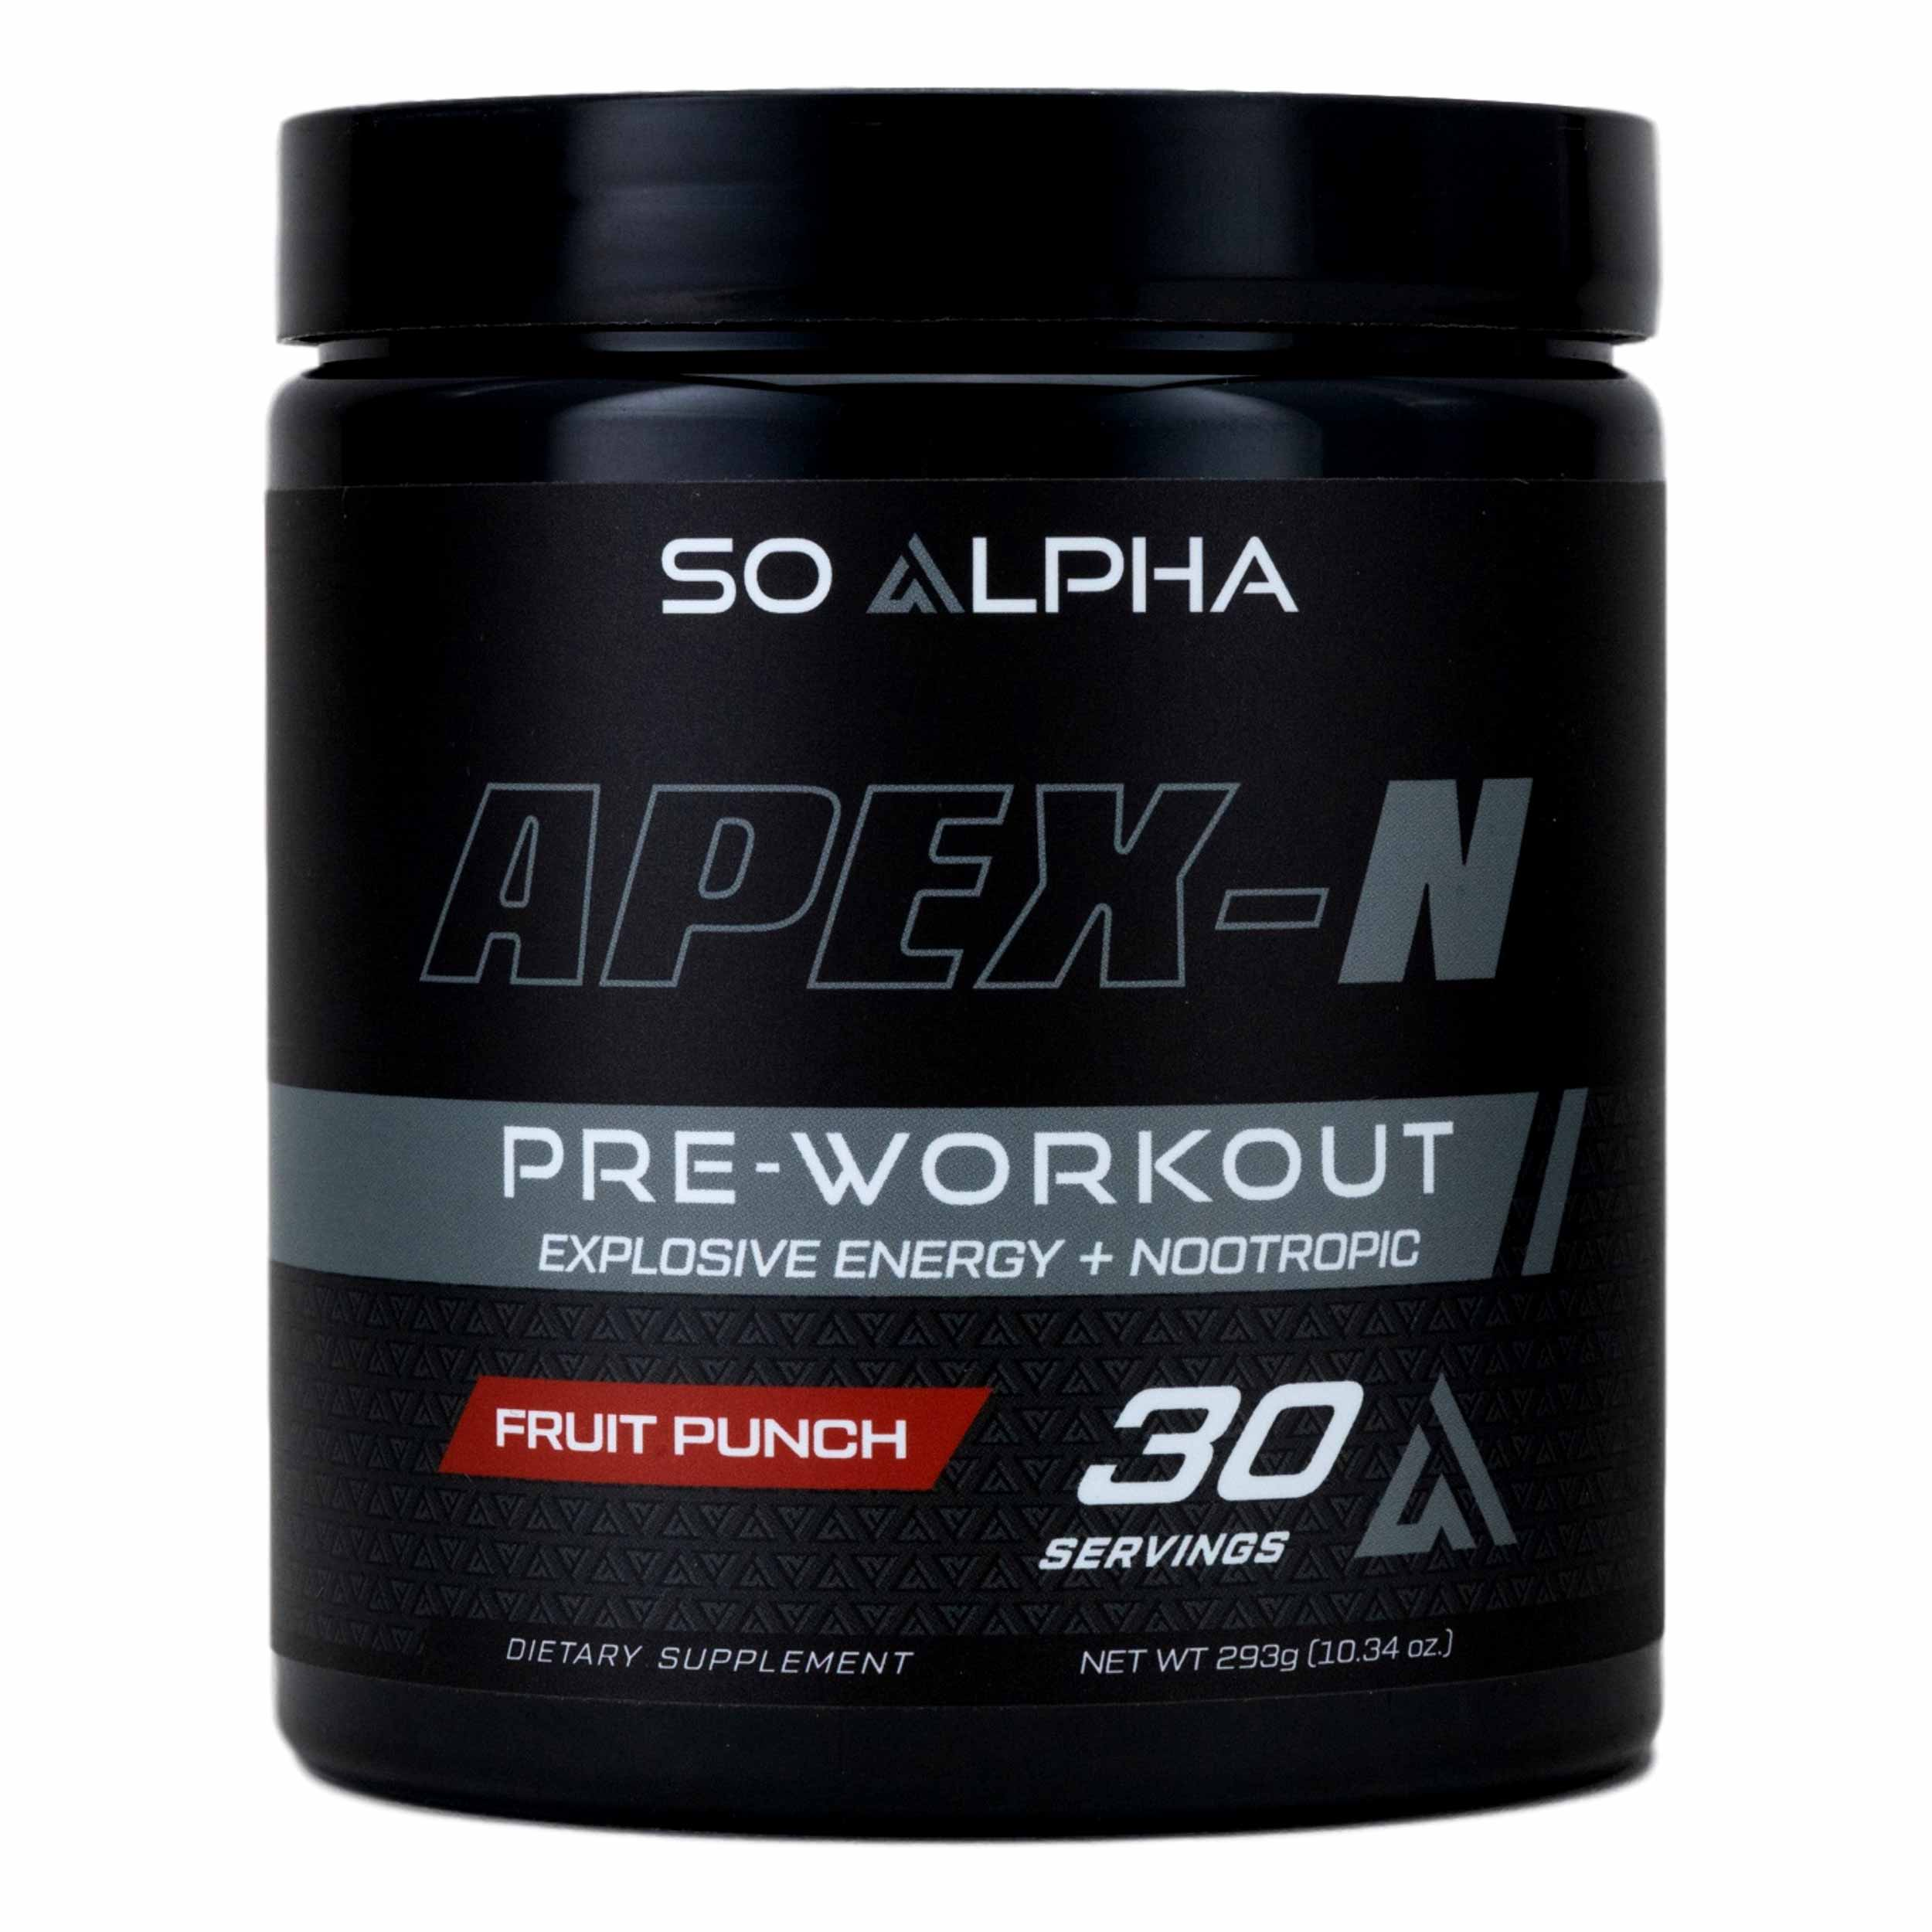 Pre Workout Product Photos by Results Imagery